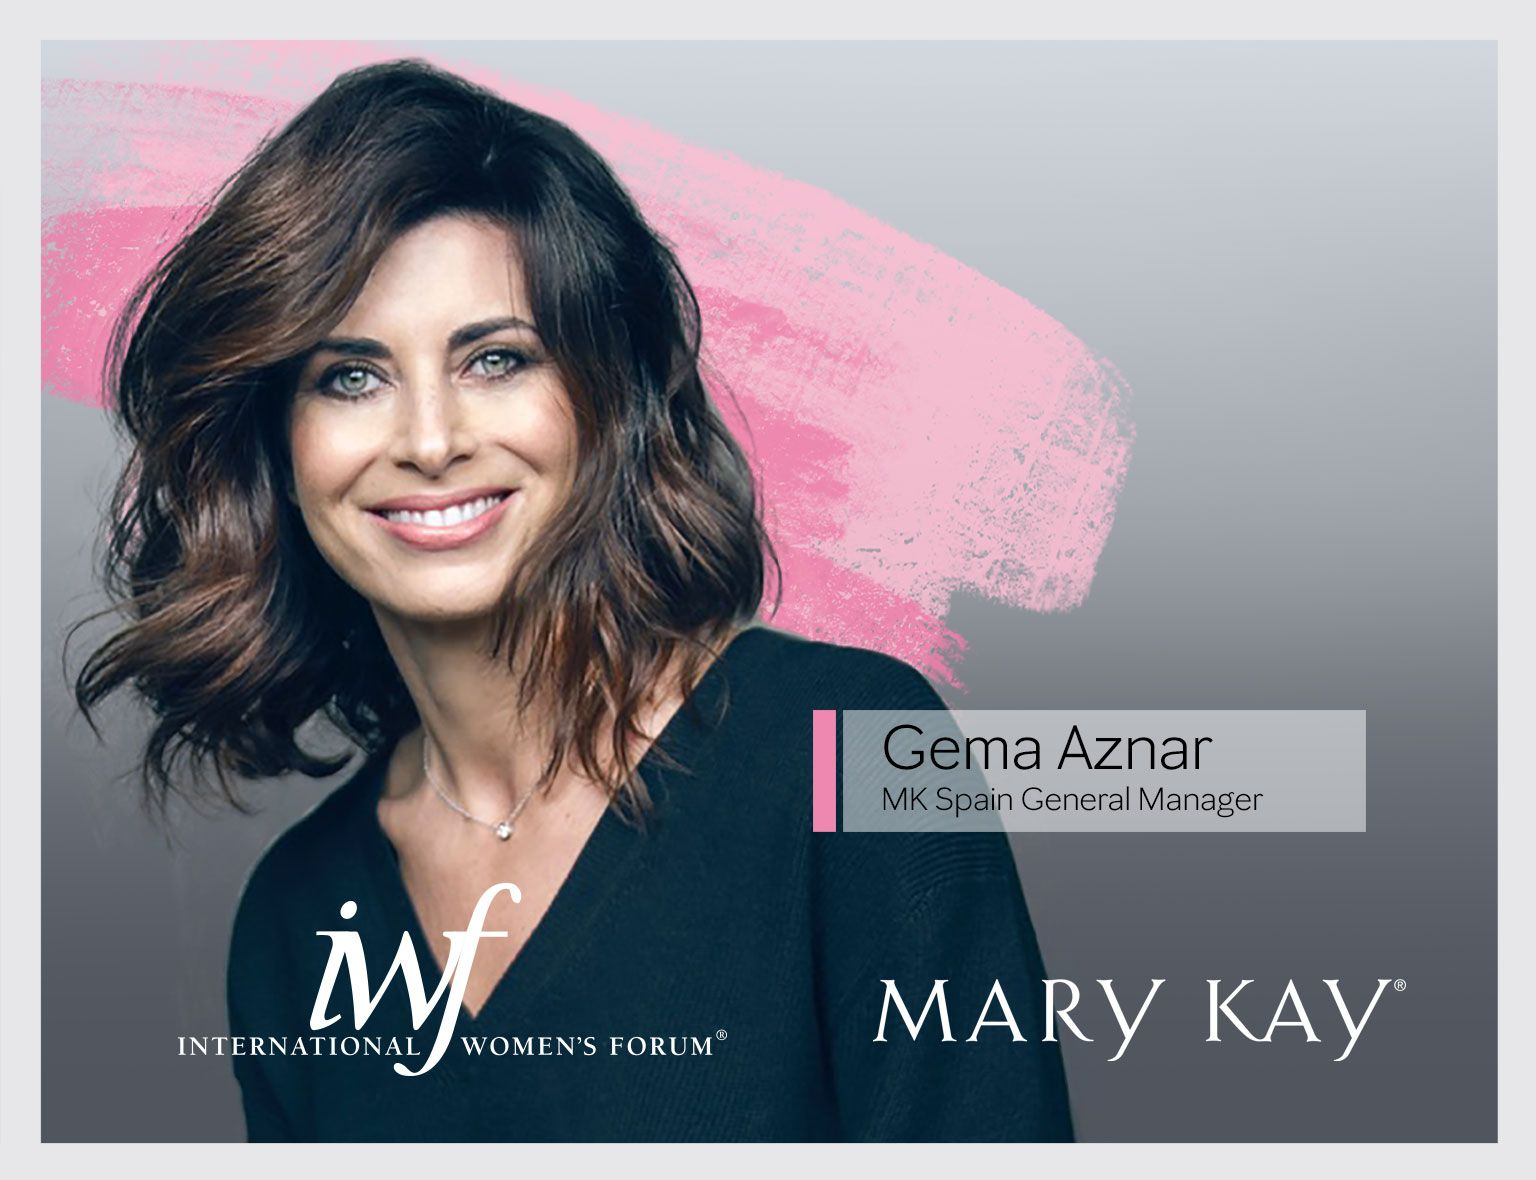 Foto de GEMMA AZNAR, MK SPAIN GENERAL MANAGER